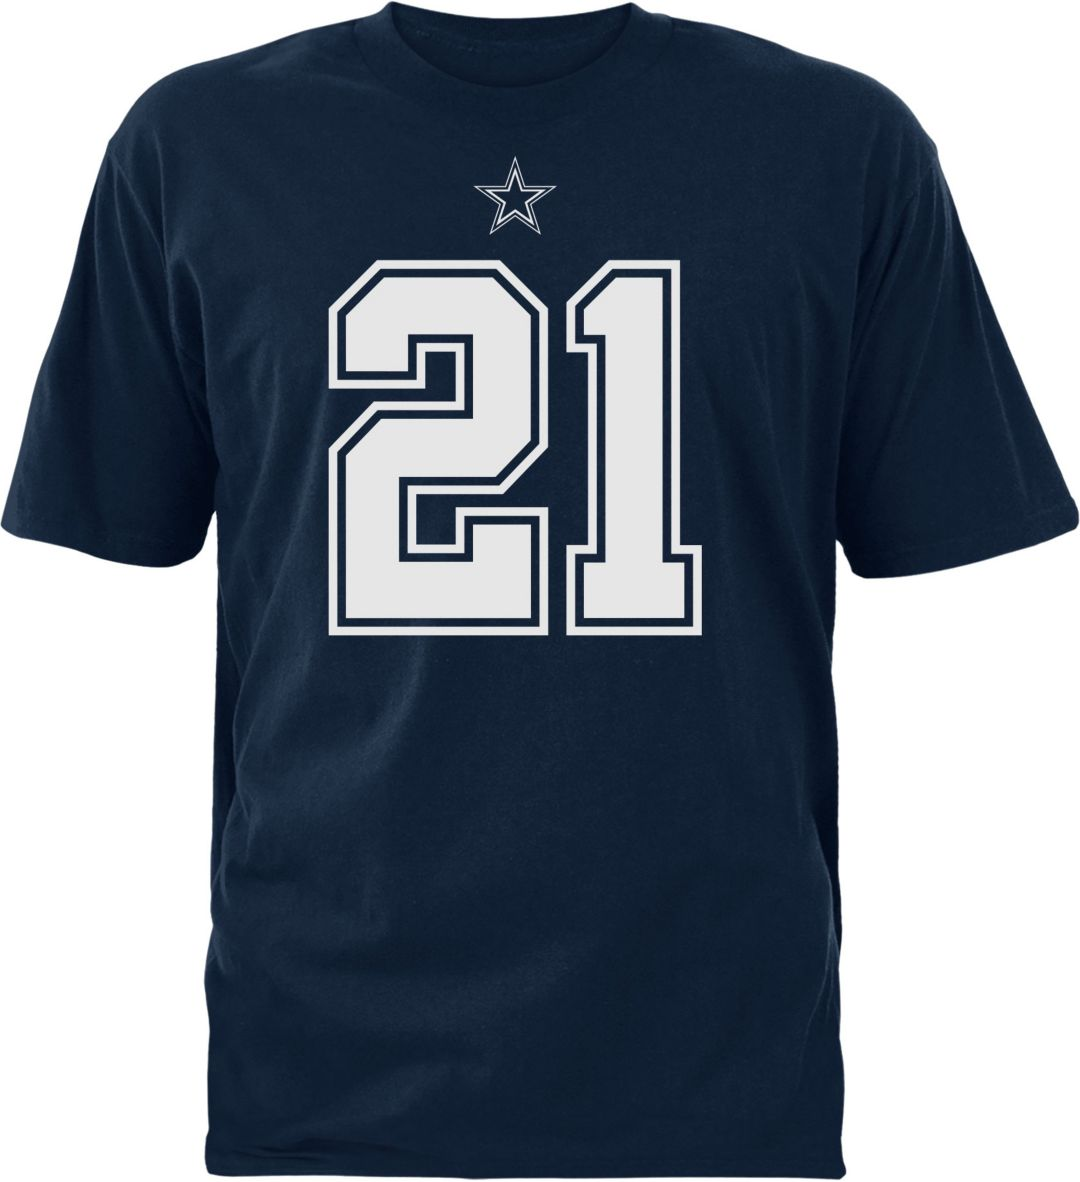 online retailer 17171 06af2 Dallas Cowboys Merchandising Youth Ezekiel Elliott #21 Pride Navy T-Shirt